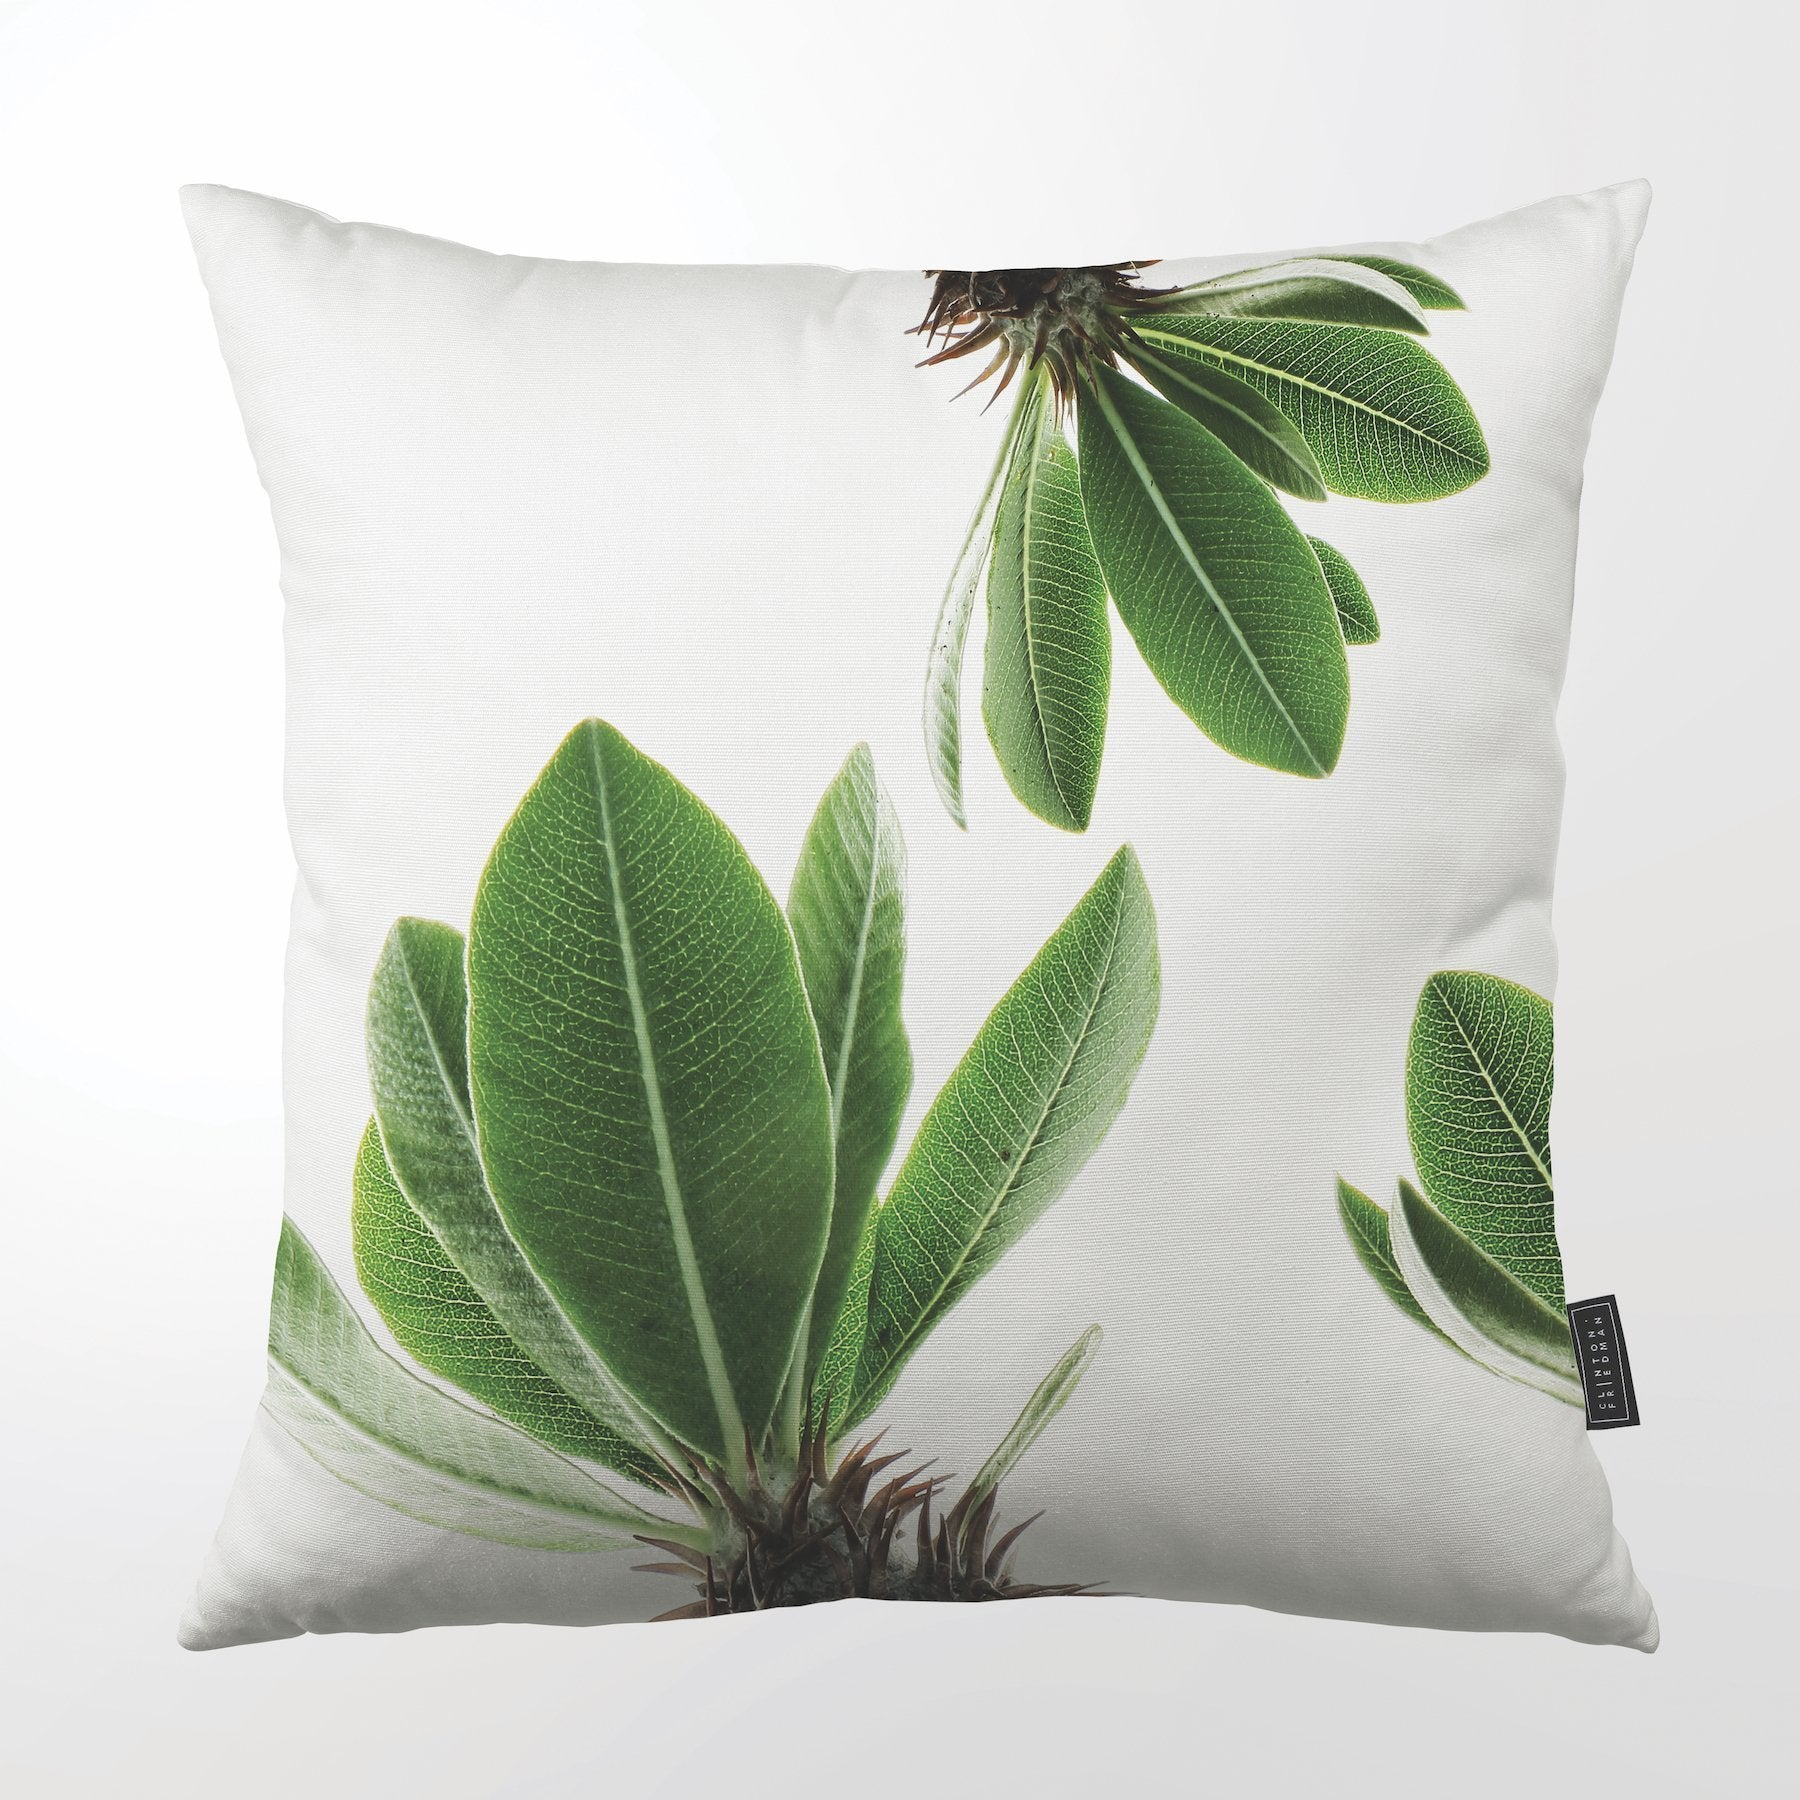 CLINTON FRIEDMAN USA NEW YORK ST VERDE THROW PILLOW